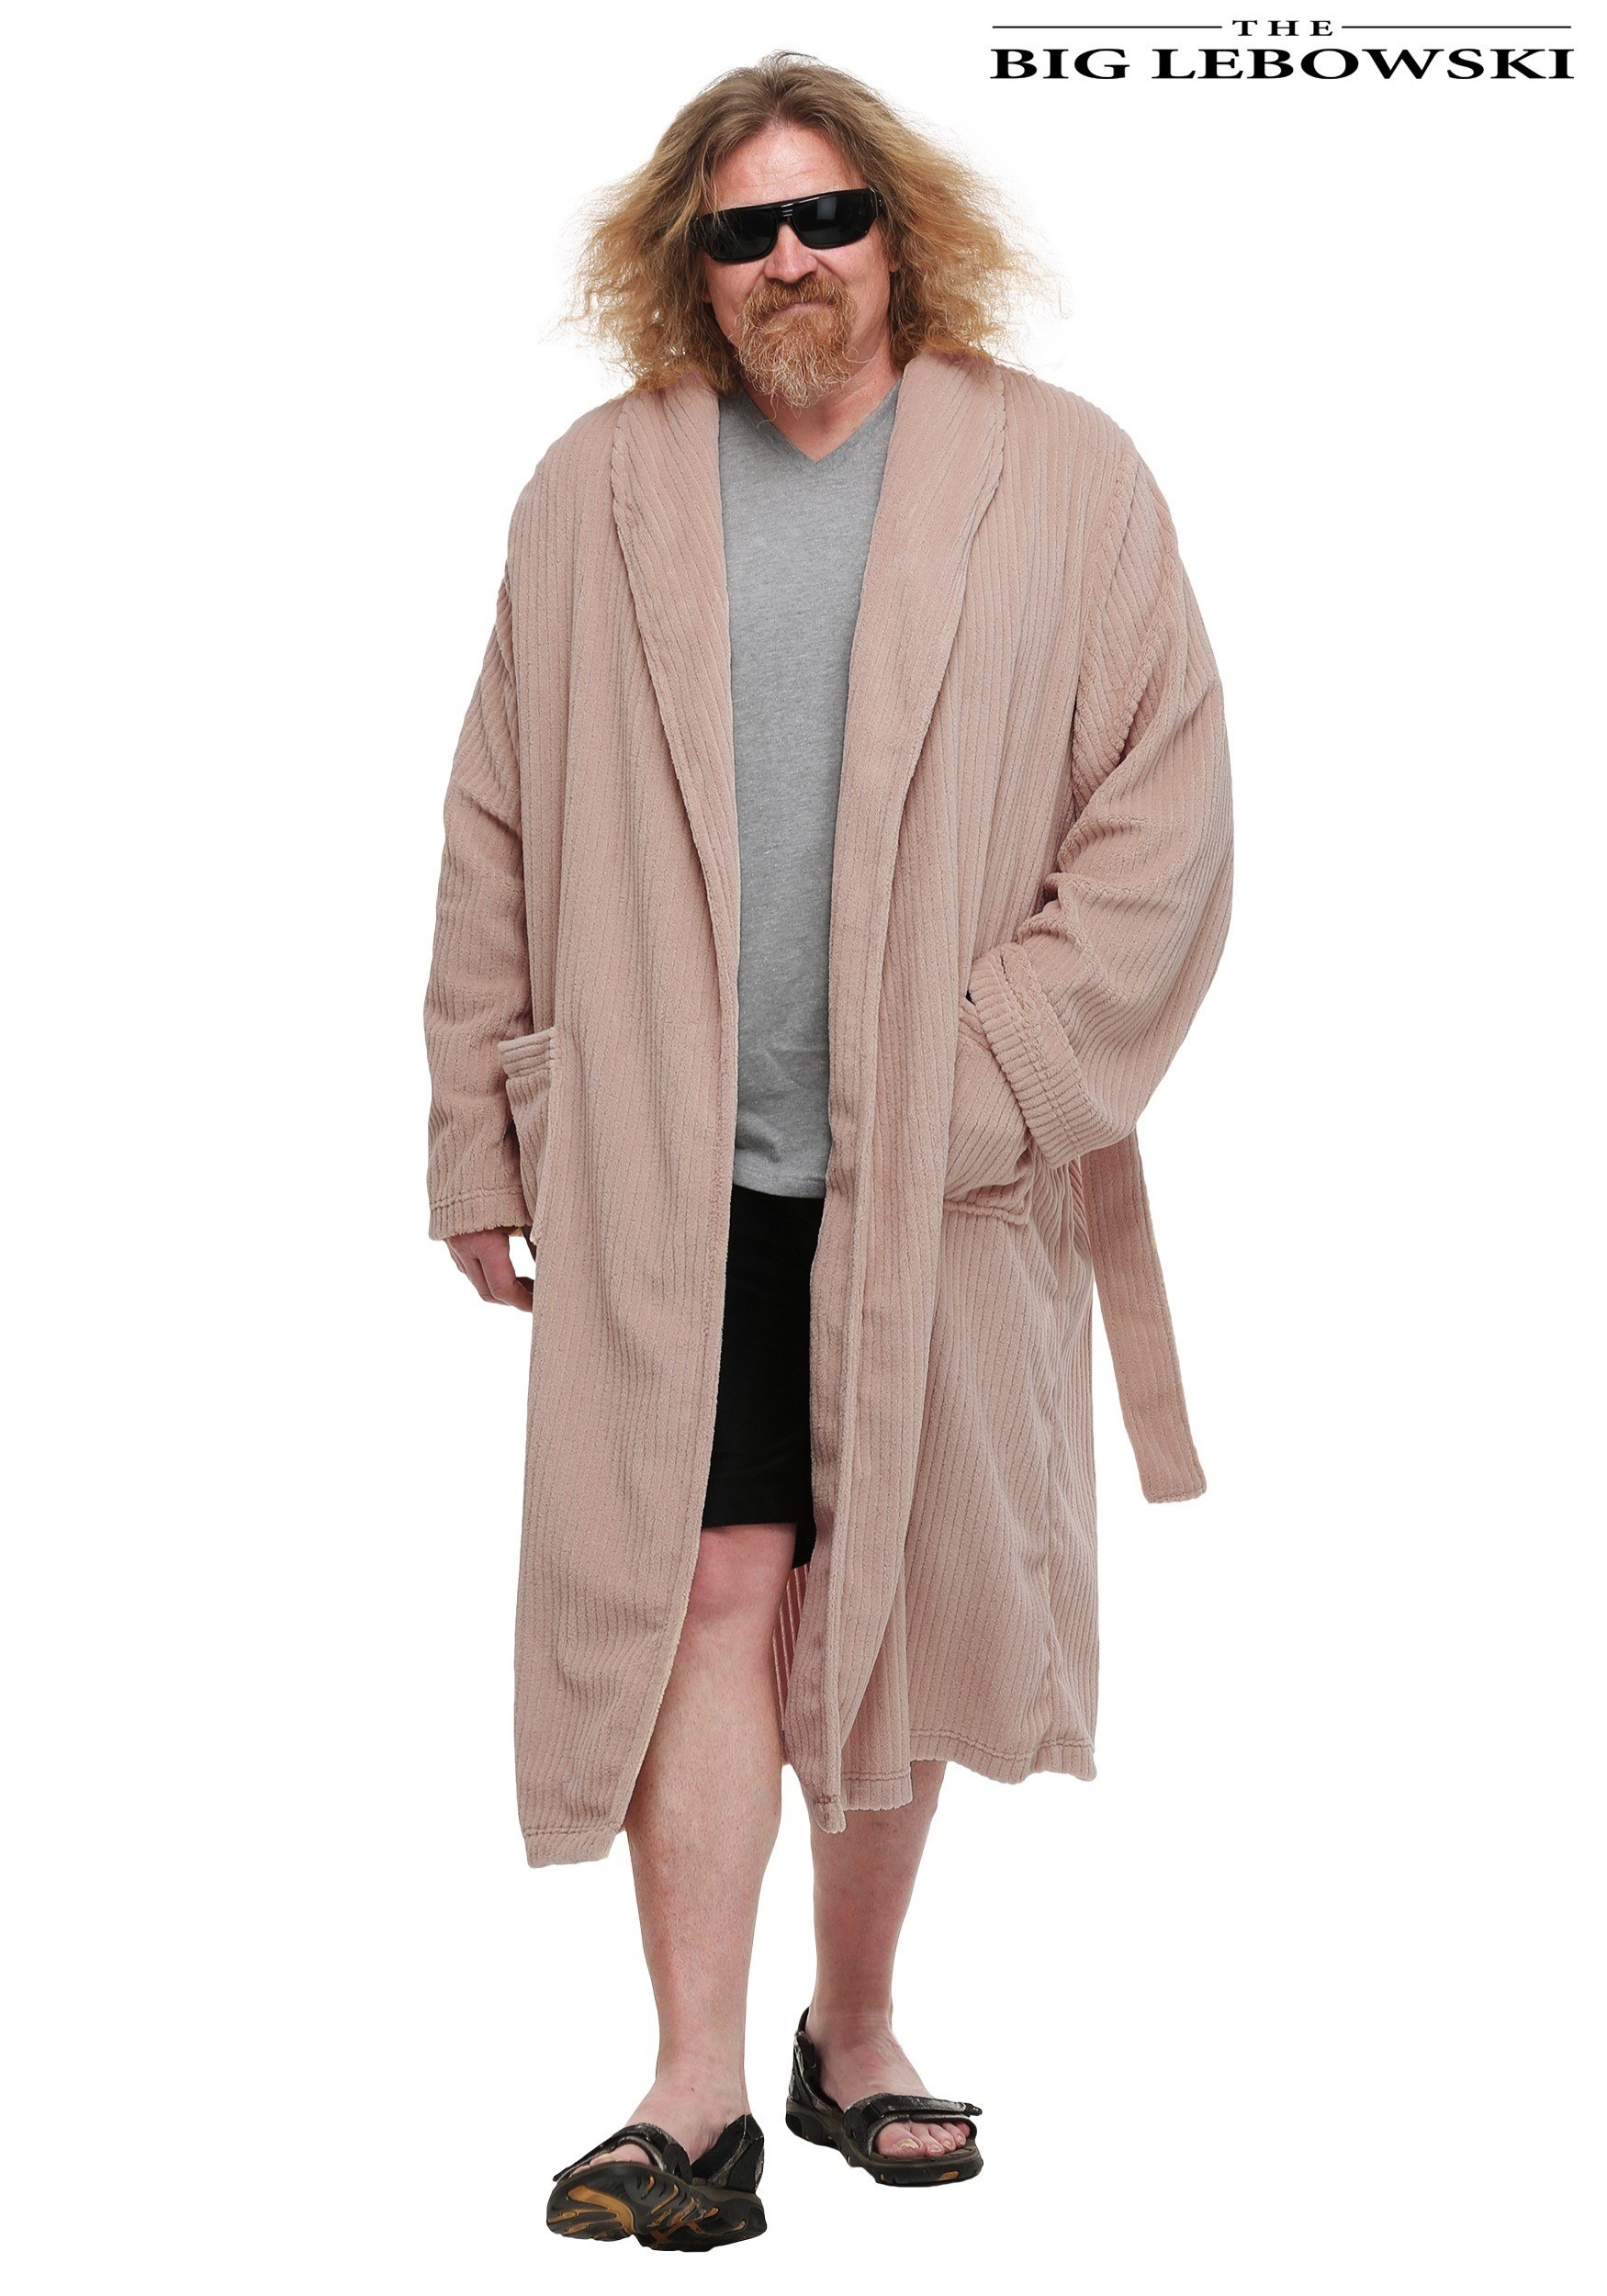 1d1bf11d1f Comfy Robes for Men and Women - Bathrobes for Women - Fun